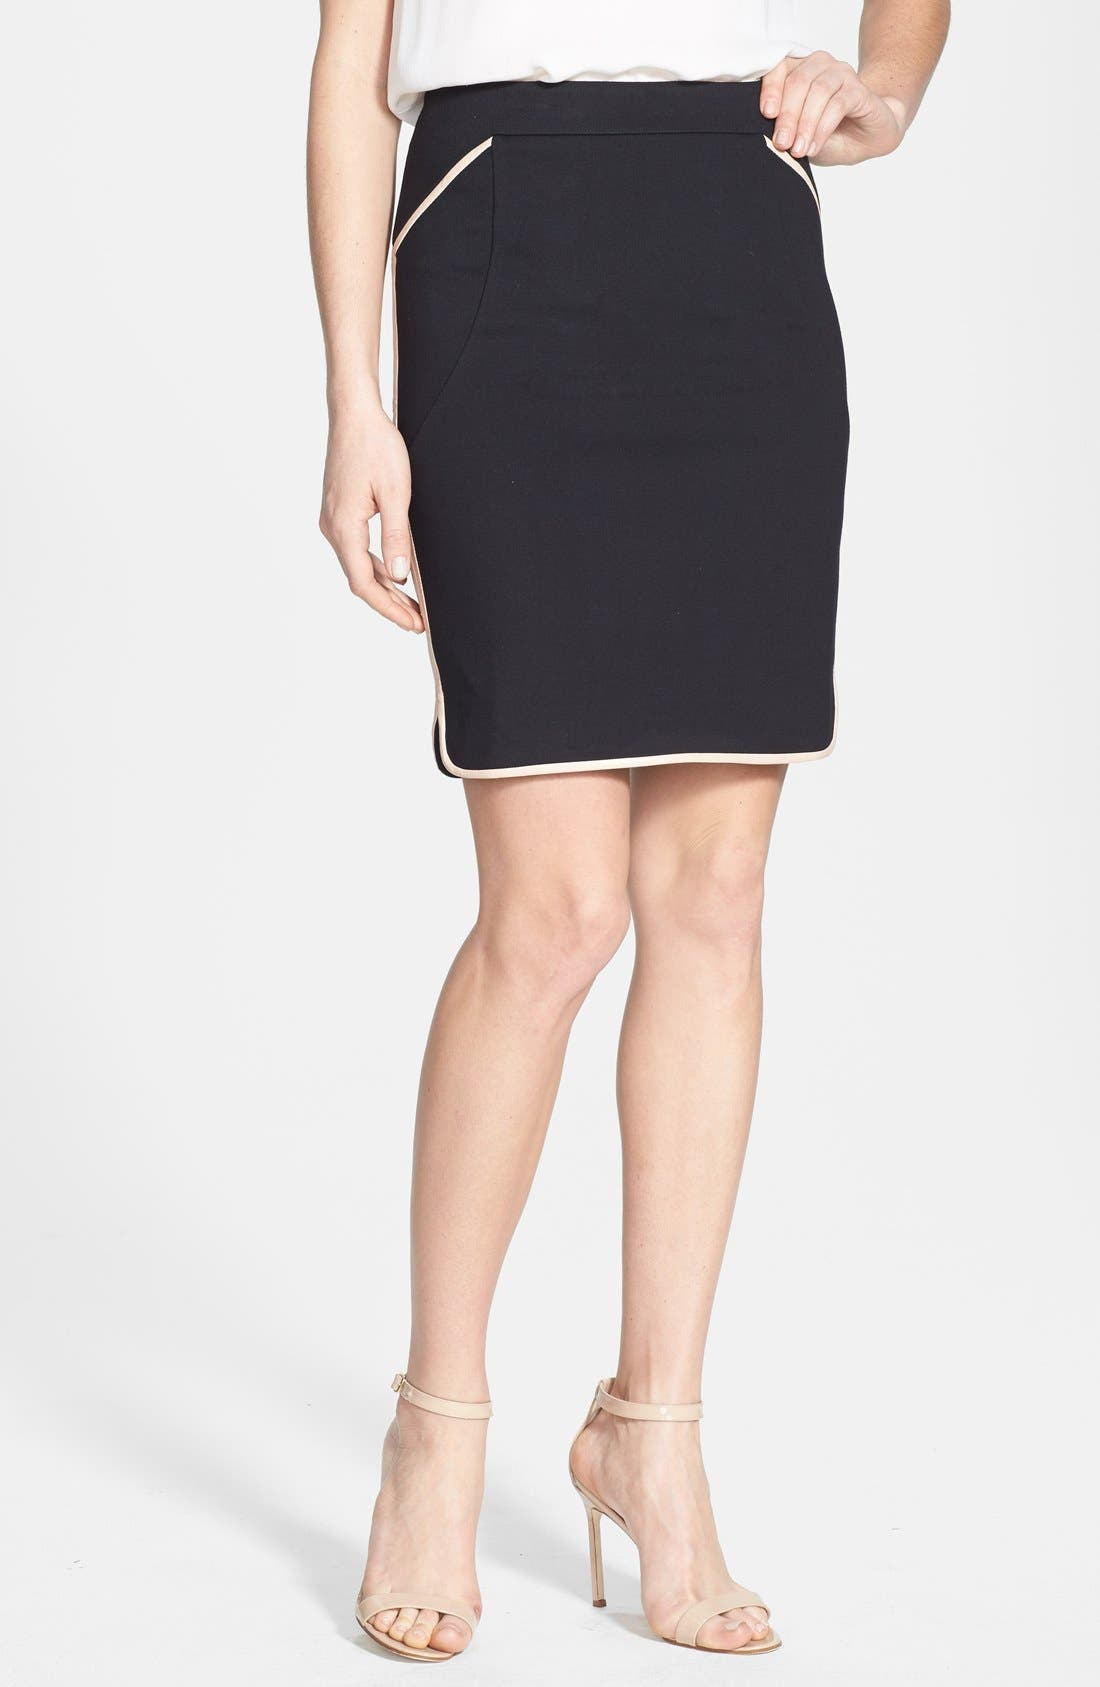 Alternate Image 1 Selected - Ted Baker London Leather Trim Pencil Skirt